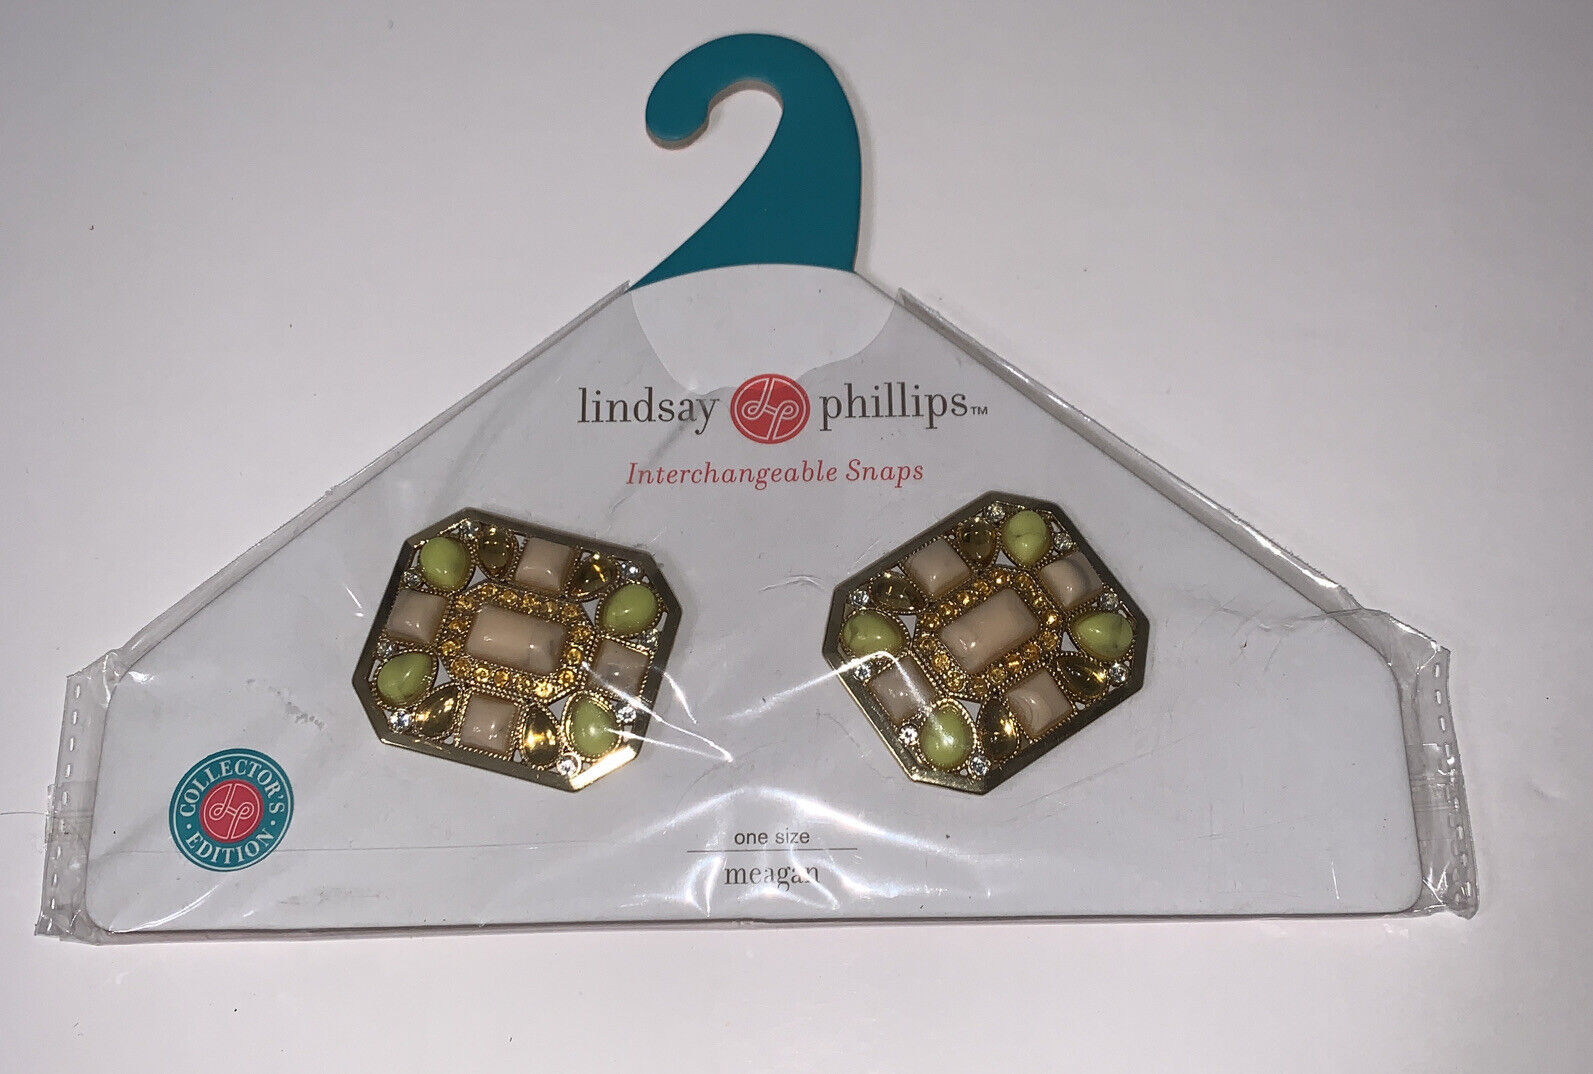 New NIP Lindsay Phillips Snaps Meagan Faux Stones Bling Yellow Peach